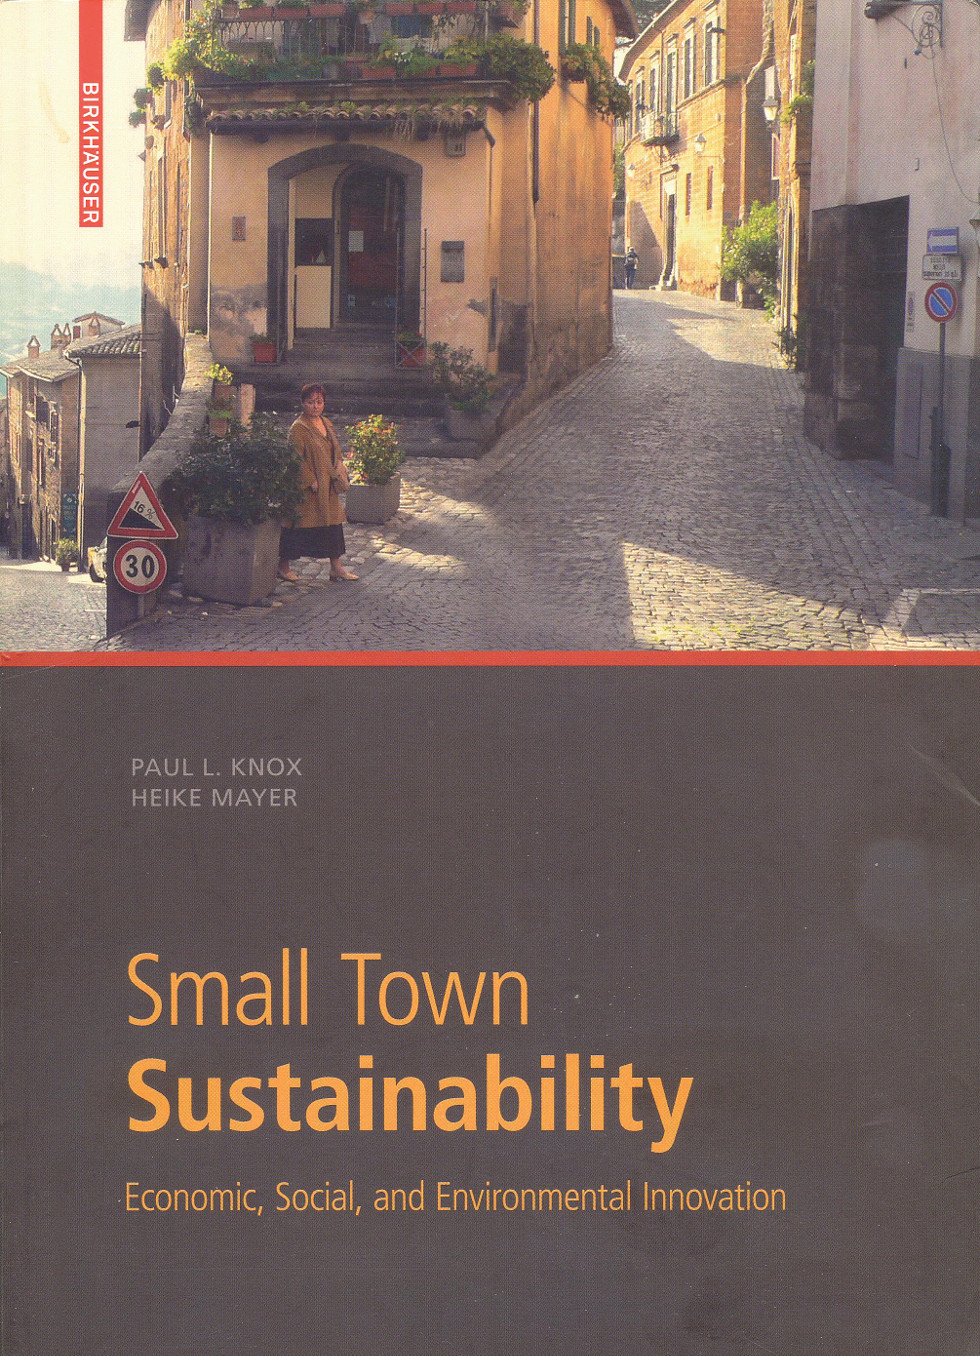 Small Town Sustainability